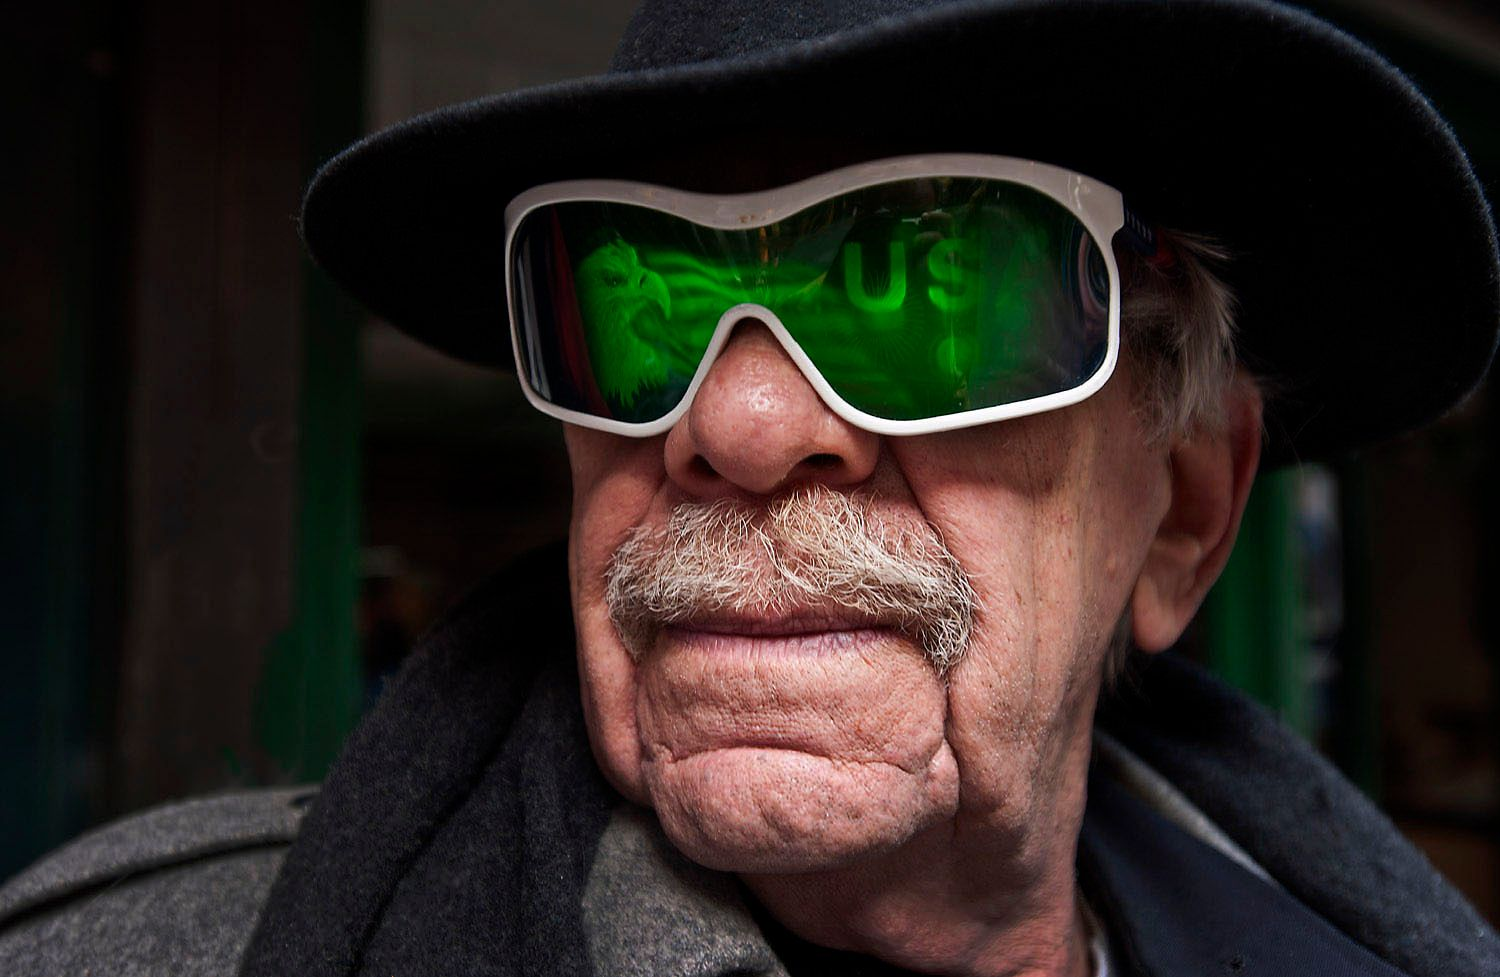 Man with Green Sunglasses